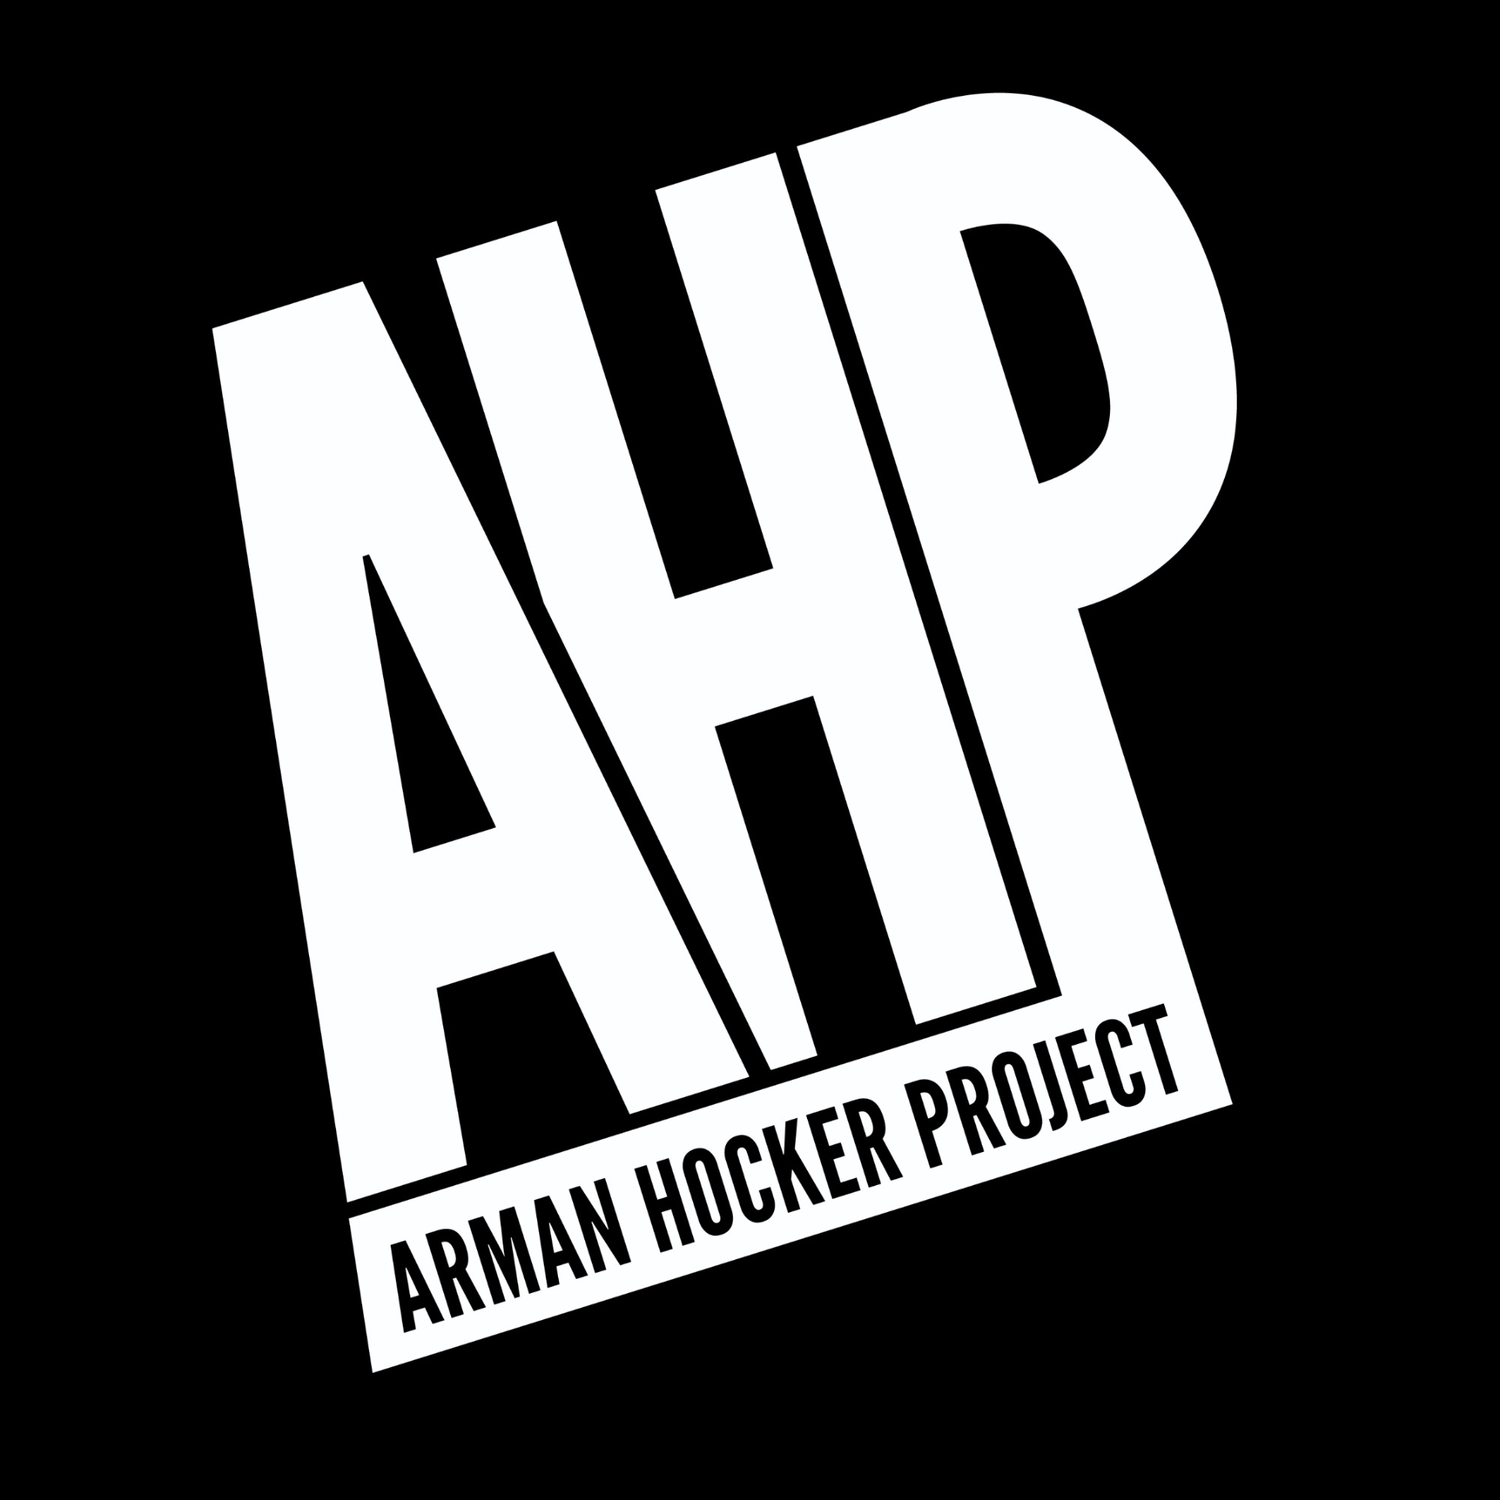 Arman Hocker Project- Official Site